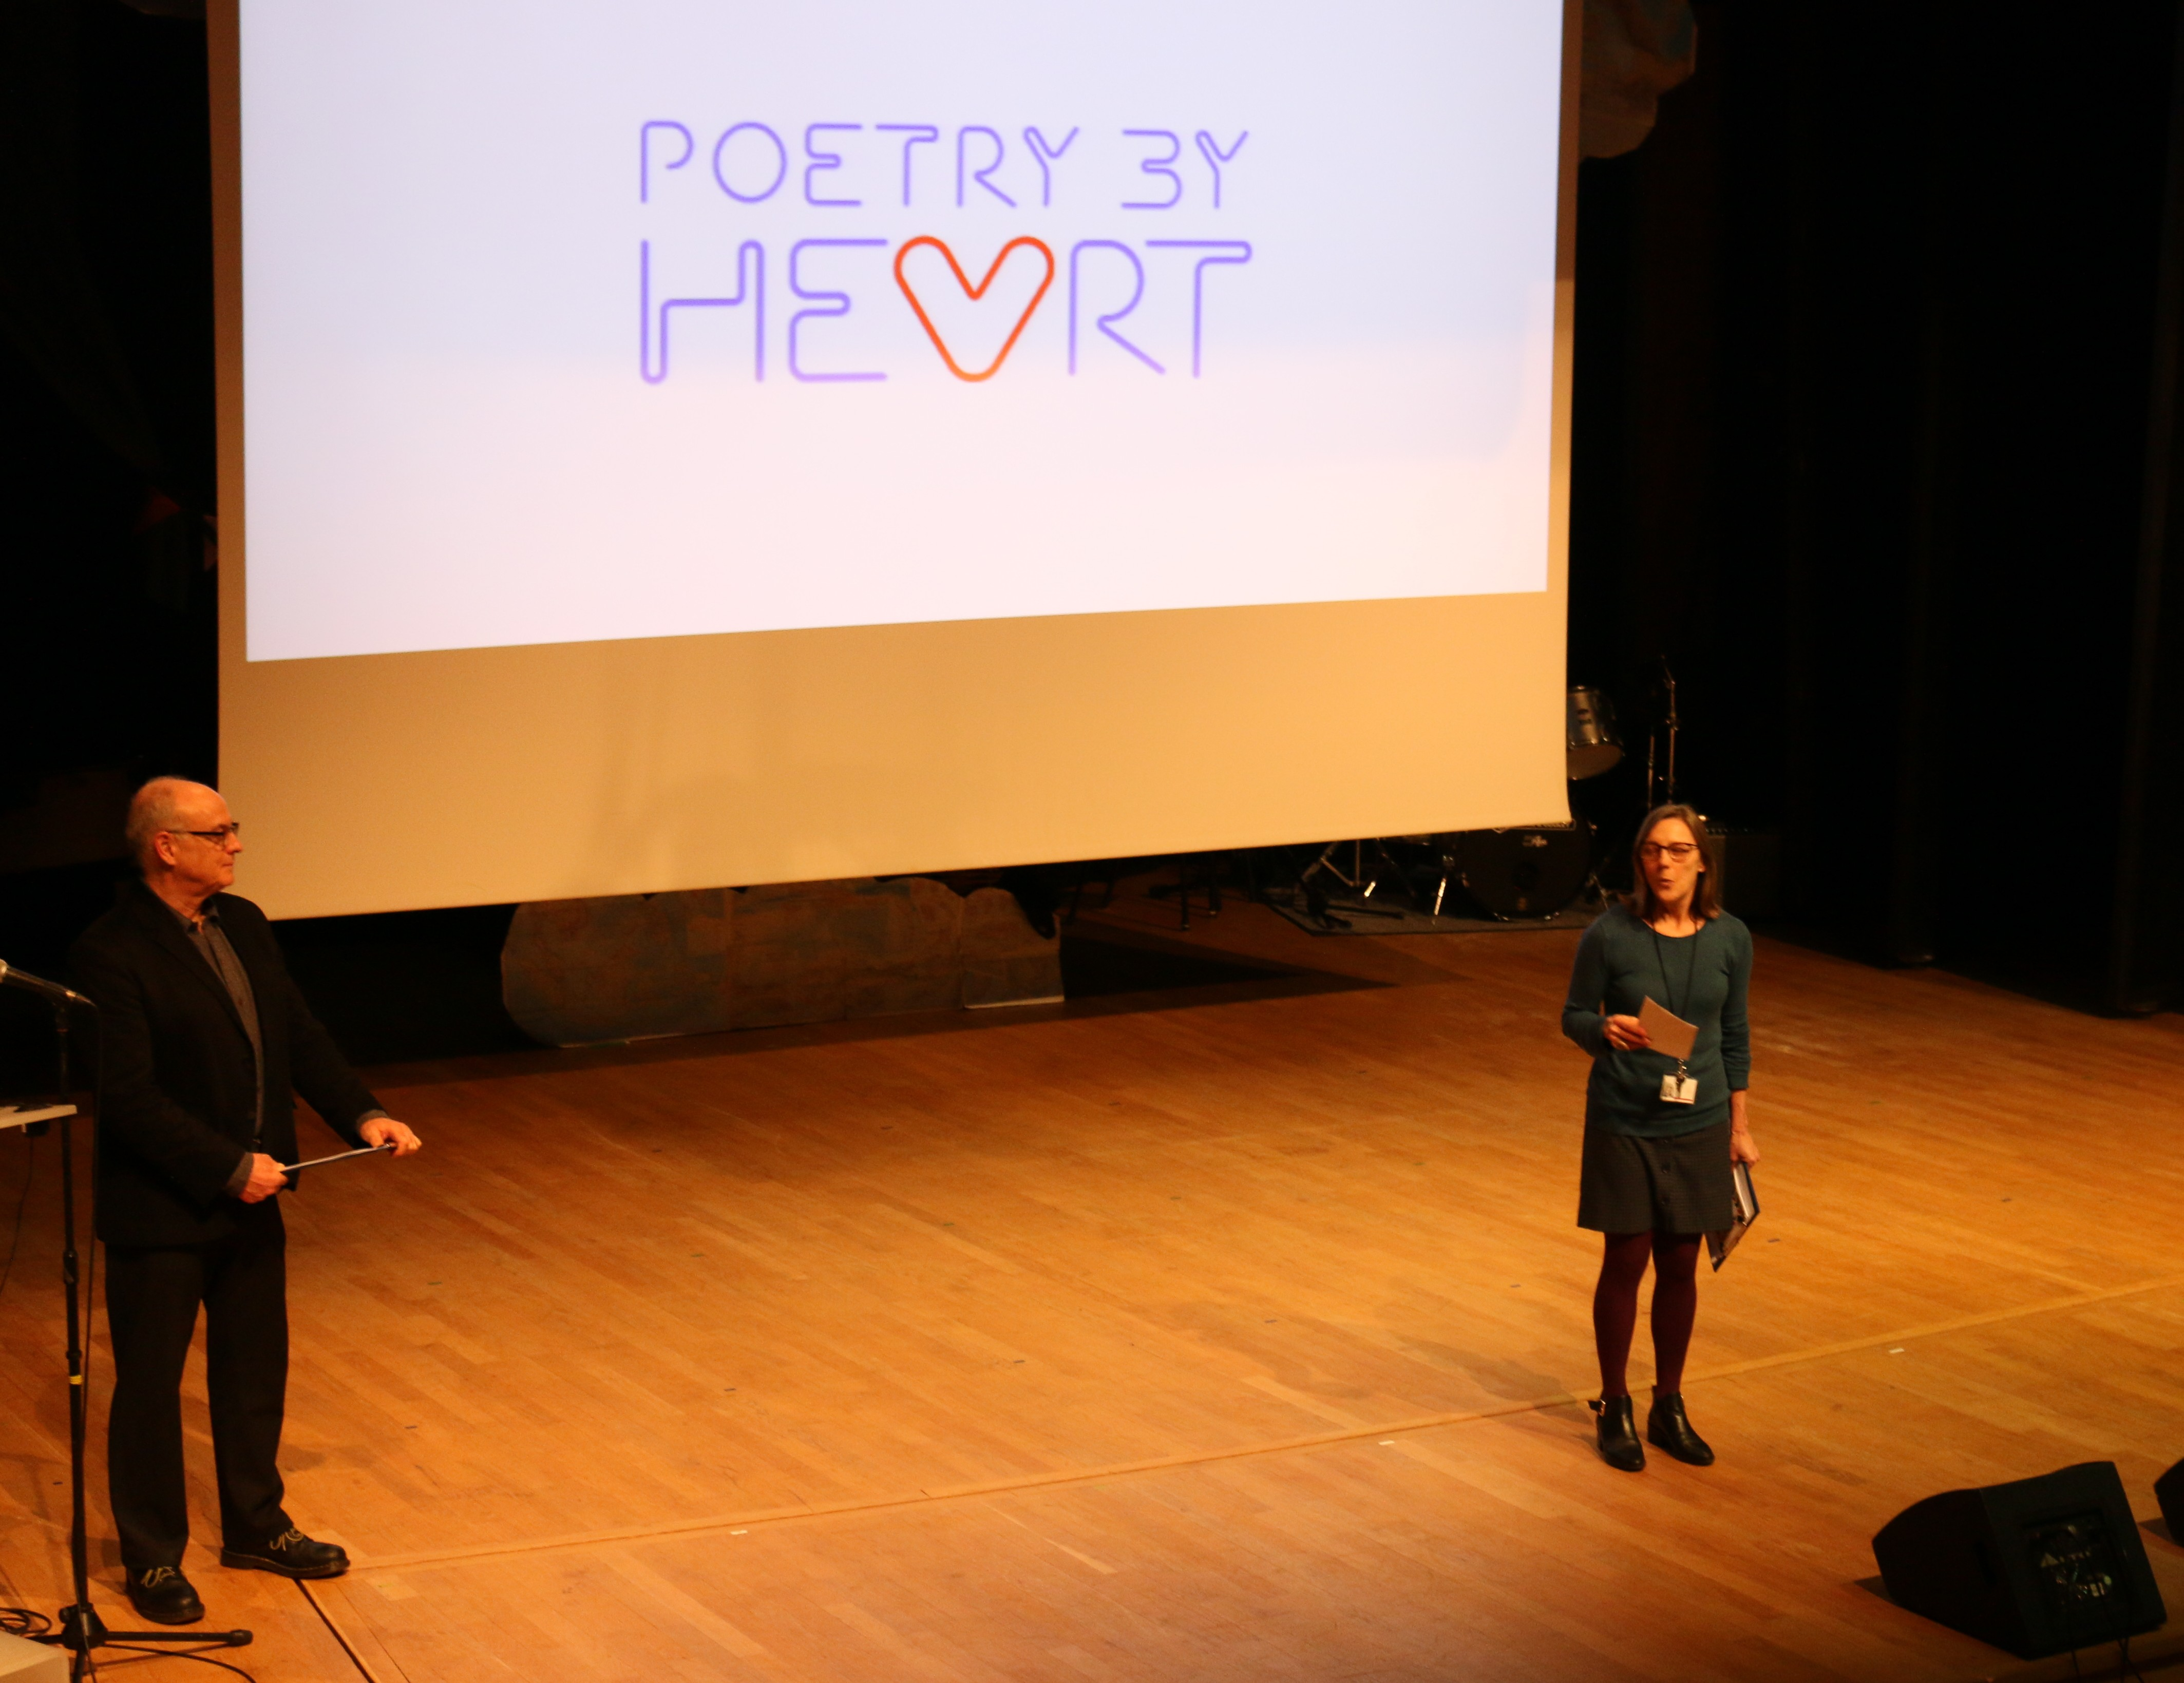 Poetry By Heart Introduction